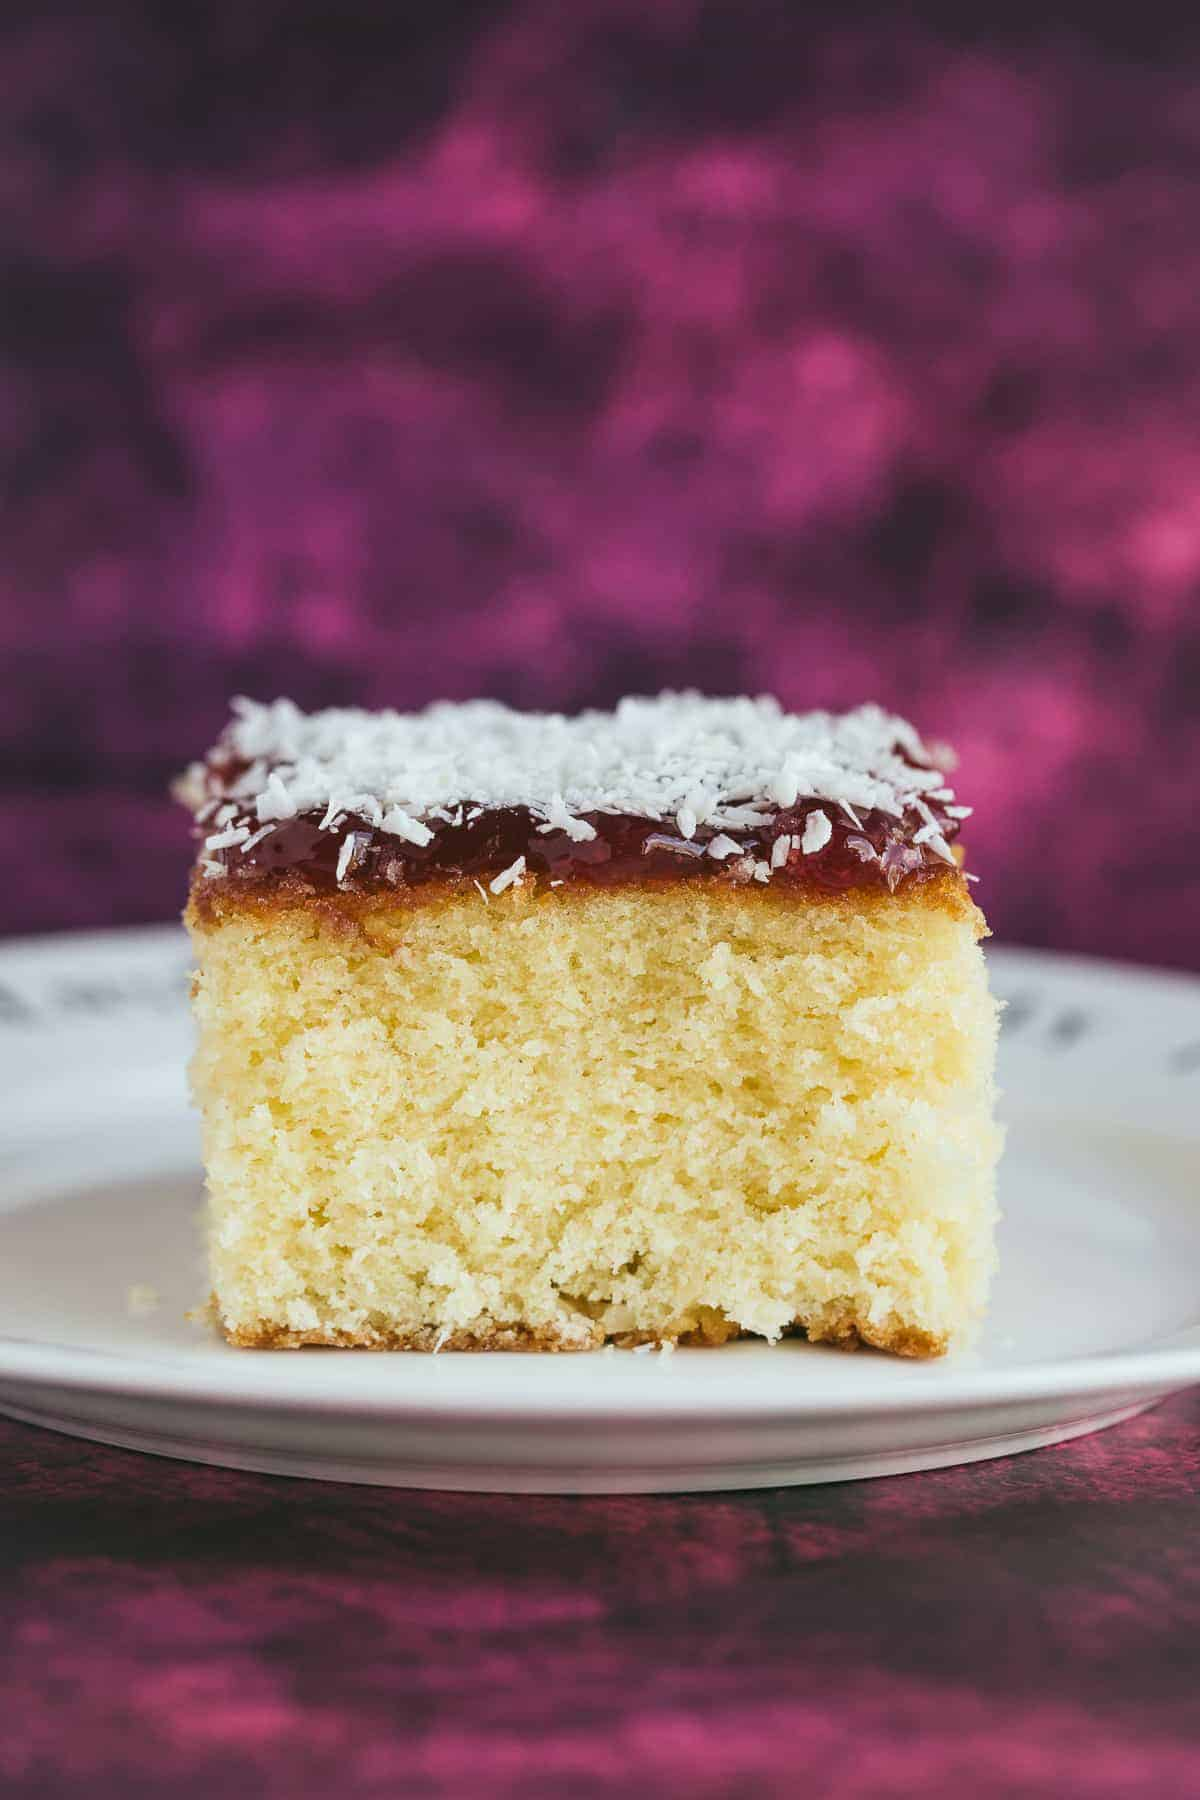 A slice of perfectly baked sponge cake.